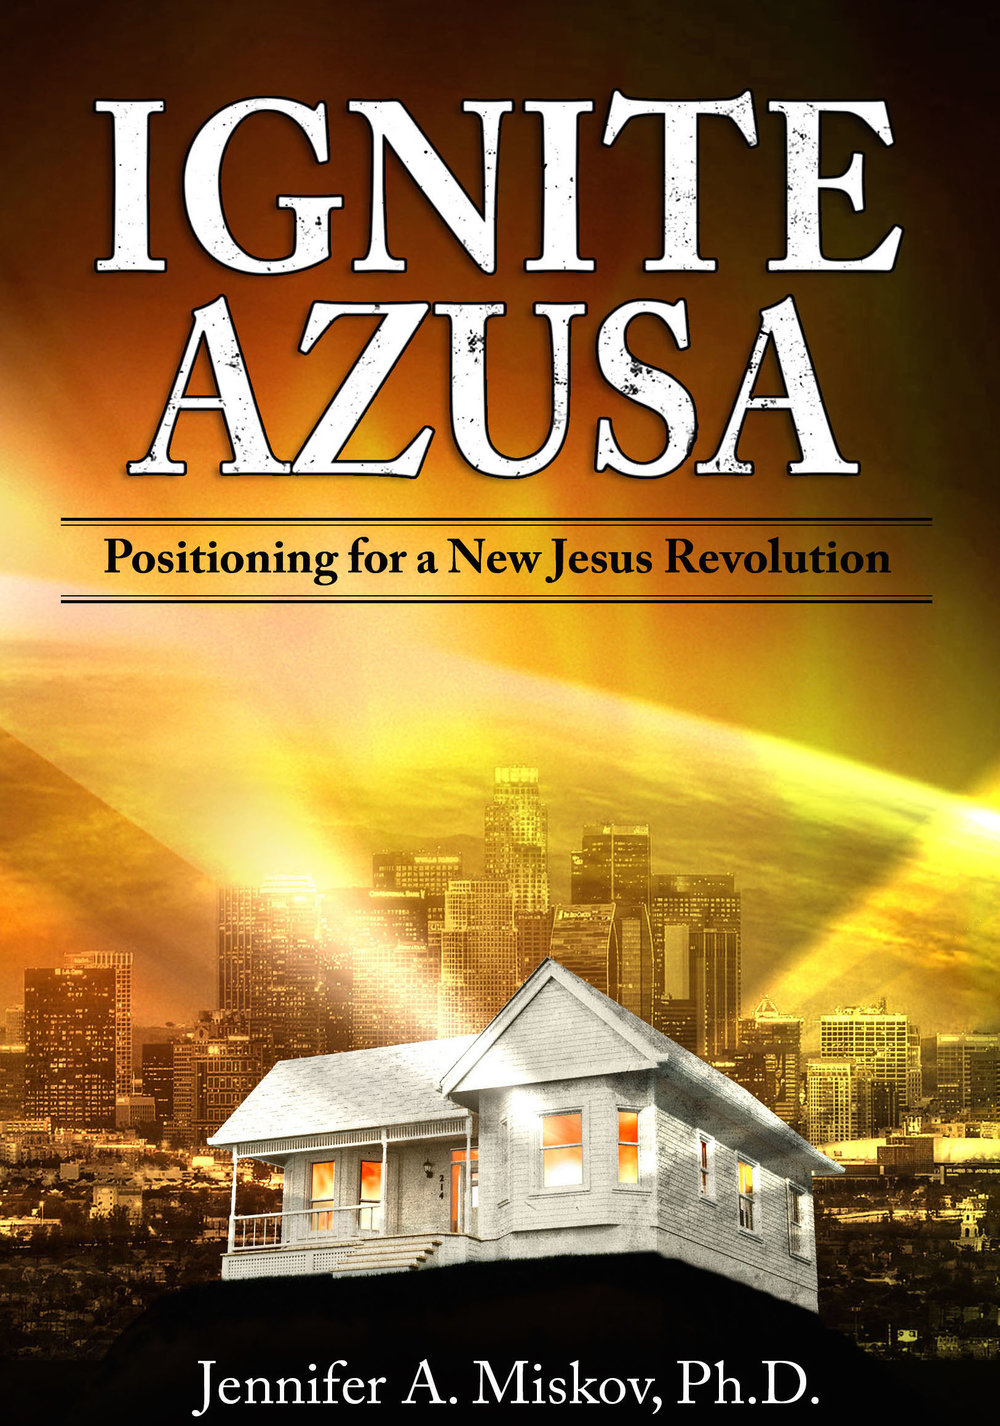 [1]   To learn more about a receiving a baptism of fire, see Jennifer A. Miskov,   Ignite Azusa   (Redding, CA: Silver to Gold, 2016), 62-64.